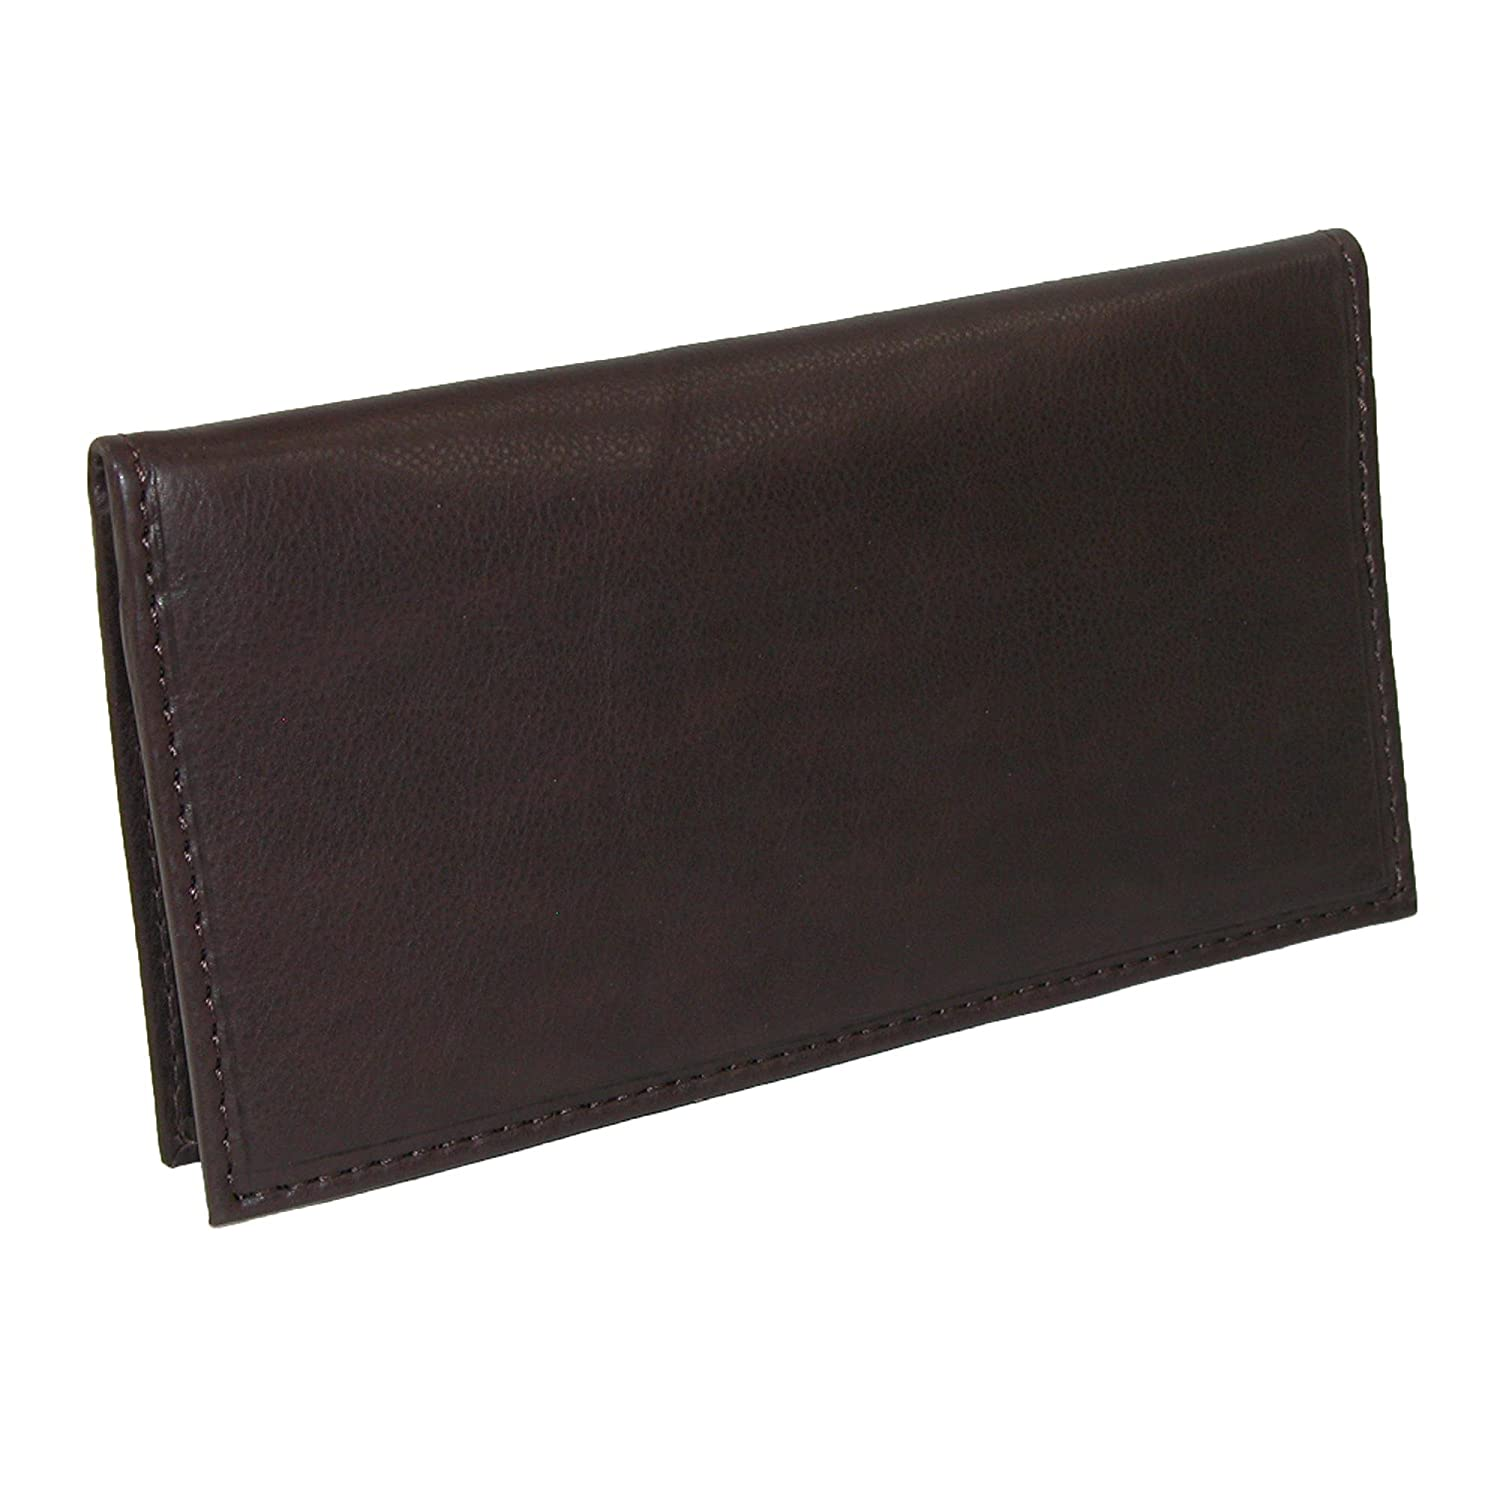 Paul & Taylor Leather Card Holder and Checkbook Cover Wallet, Brown